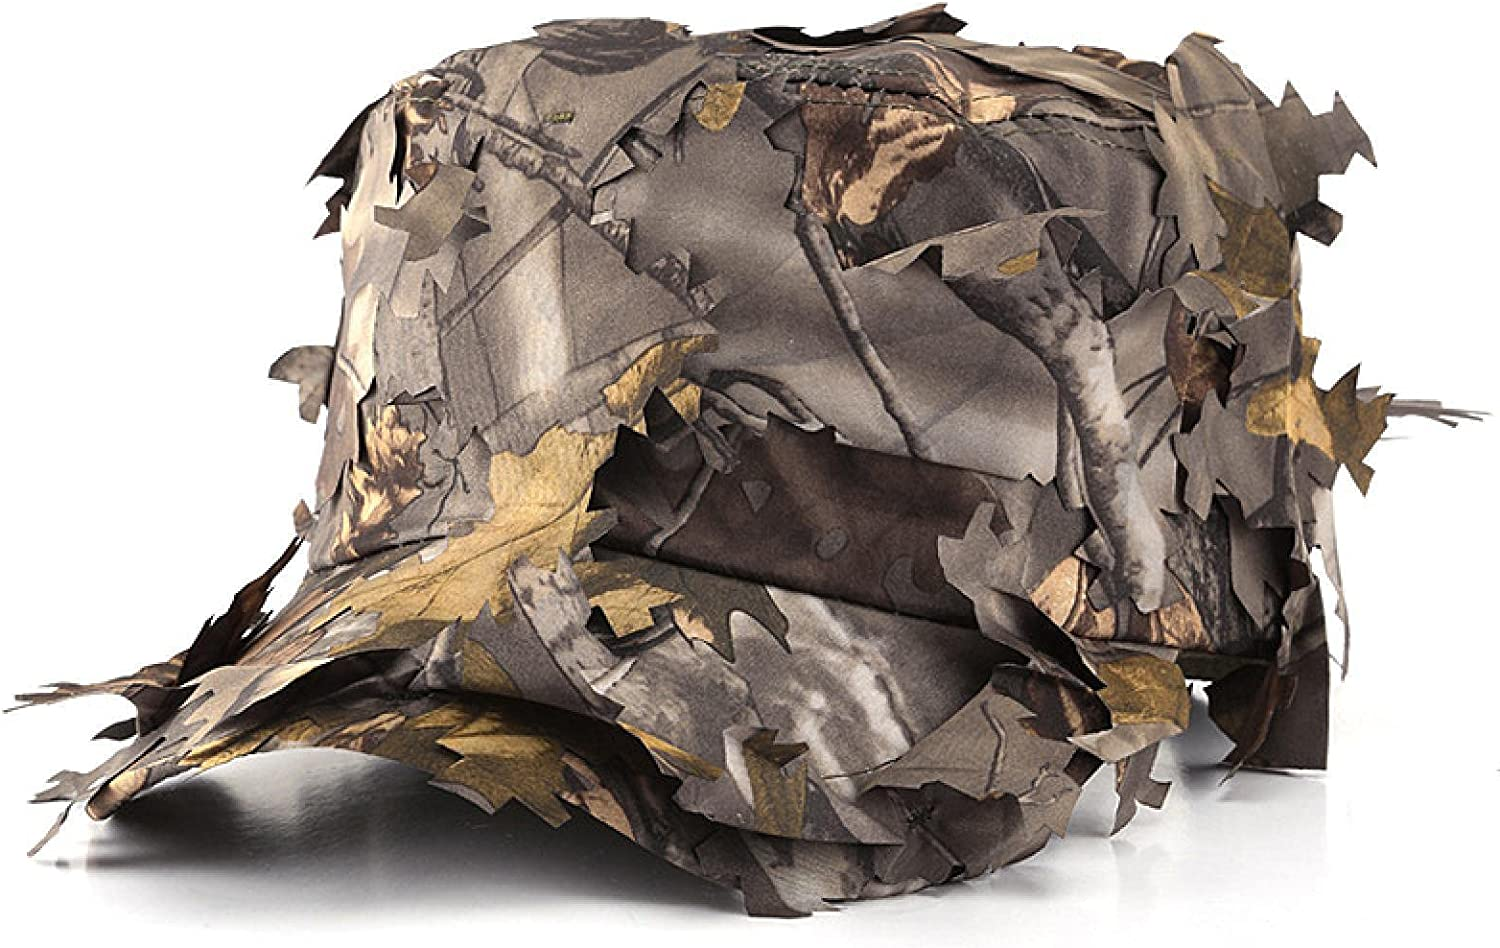 NJJX Camouflage Hat OFFicial Outdoor Max 74% OFF Sports Sun Tourism Travel Person